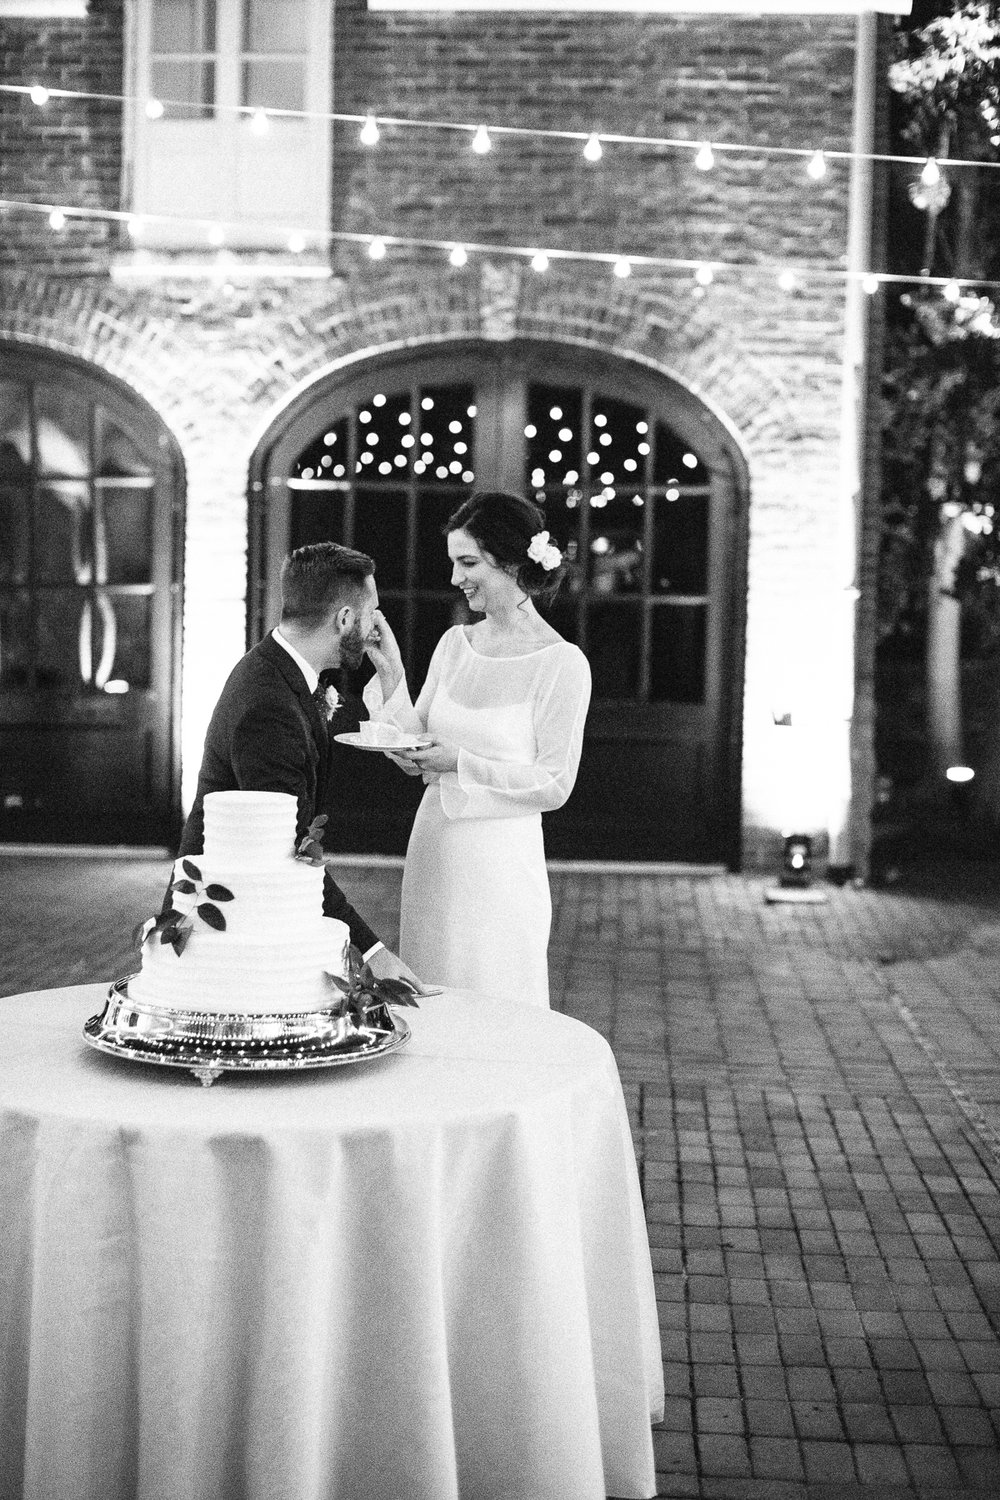 web ellen + paul cheekwood film documentary wedding photographers ©2016abigailbobophotography-44.jpg